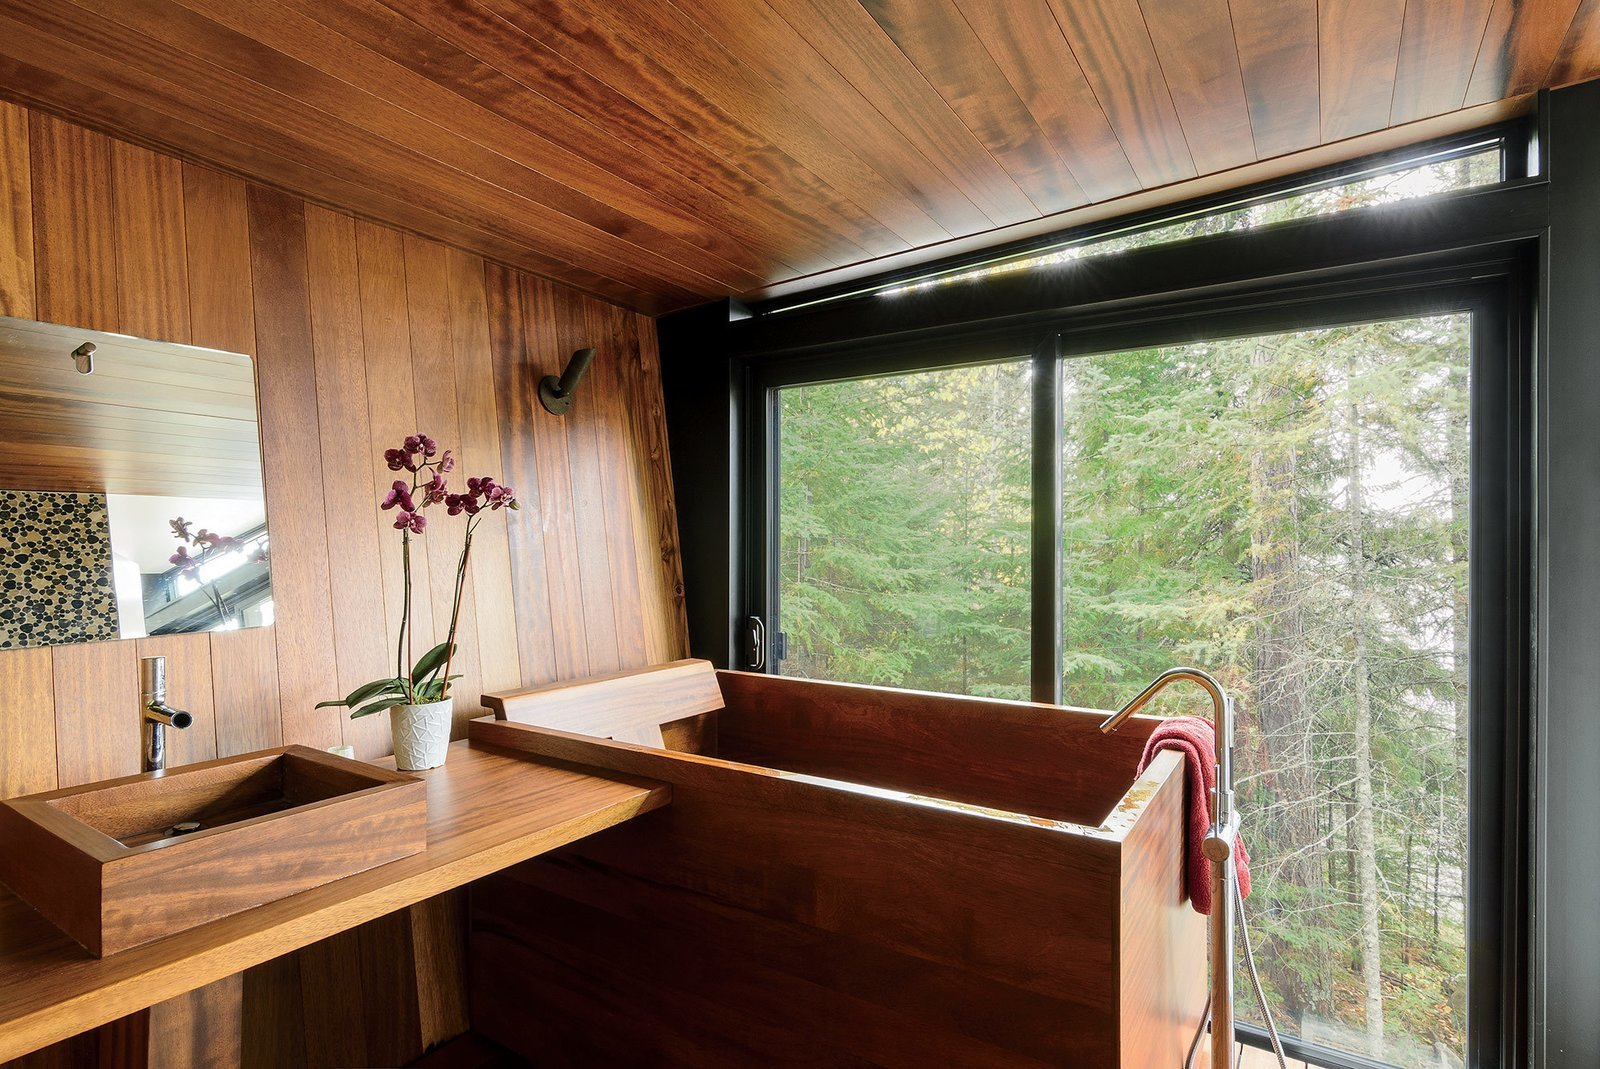 Bath Room, Wood Counter, Vessel Sink, Wall Lighting, and Soaking Tub Architect Charlie Lazor designed this peaceful, lakeside prefab in Ontario, Canada with a Japanese-style bathroom, clad in teak, with a matching tub and sink by Bath in Wood.  Best Photos from 10 Zen Homes That Champion Japanese Design